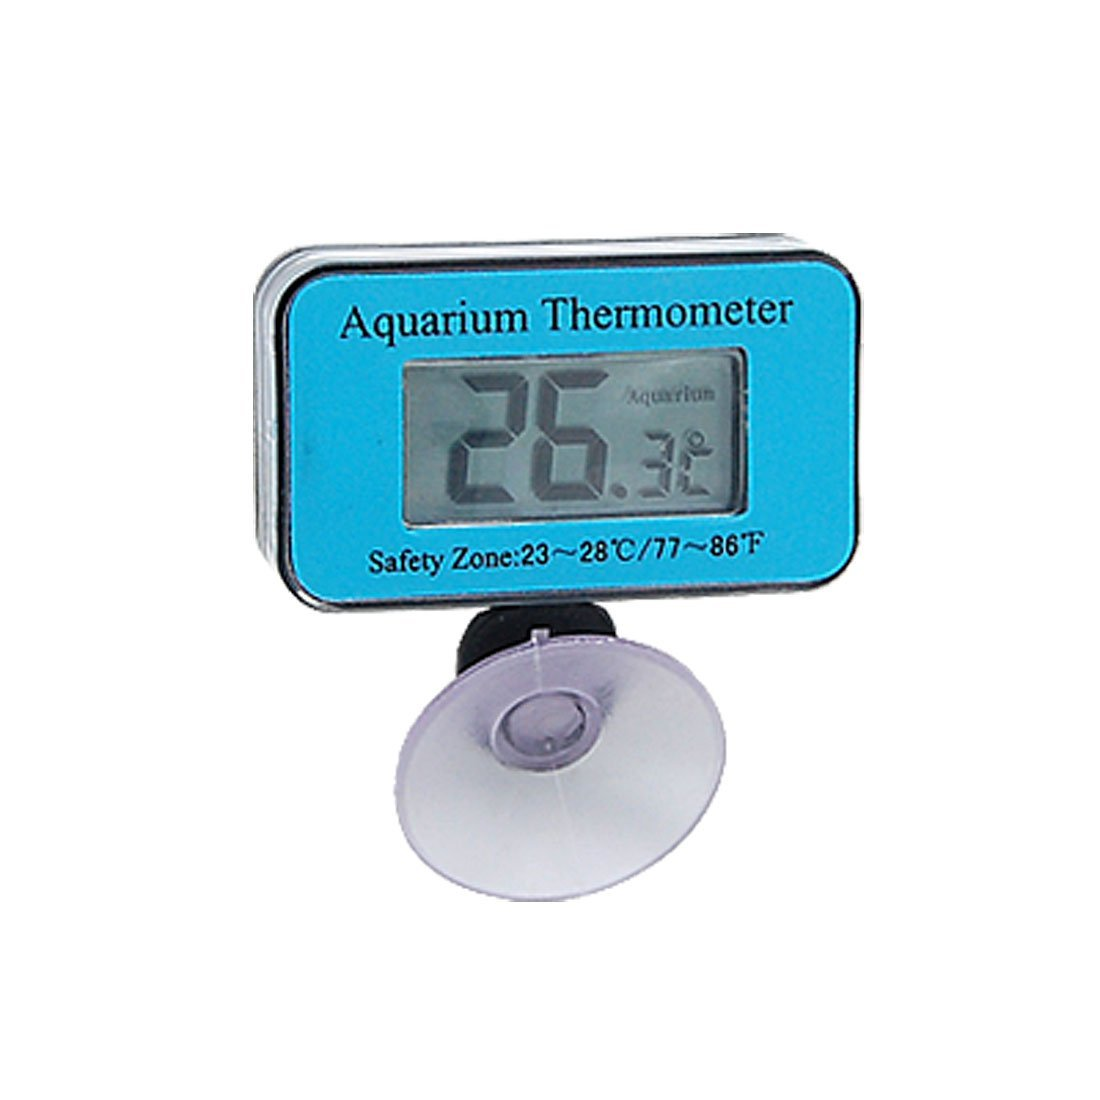 Digital Mini Waterproof LCD Display Aquarium Thermometer with Suction Cup